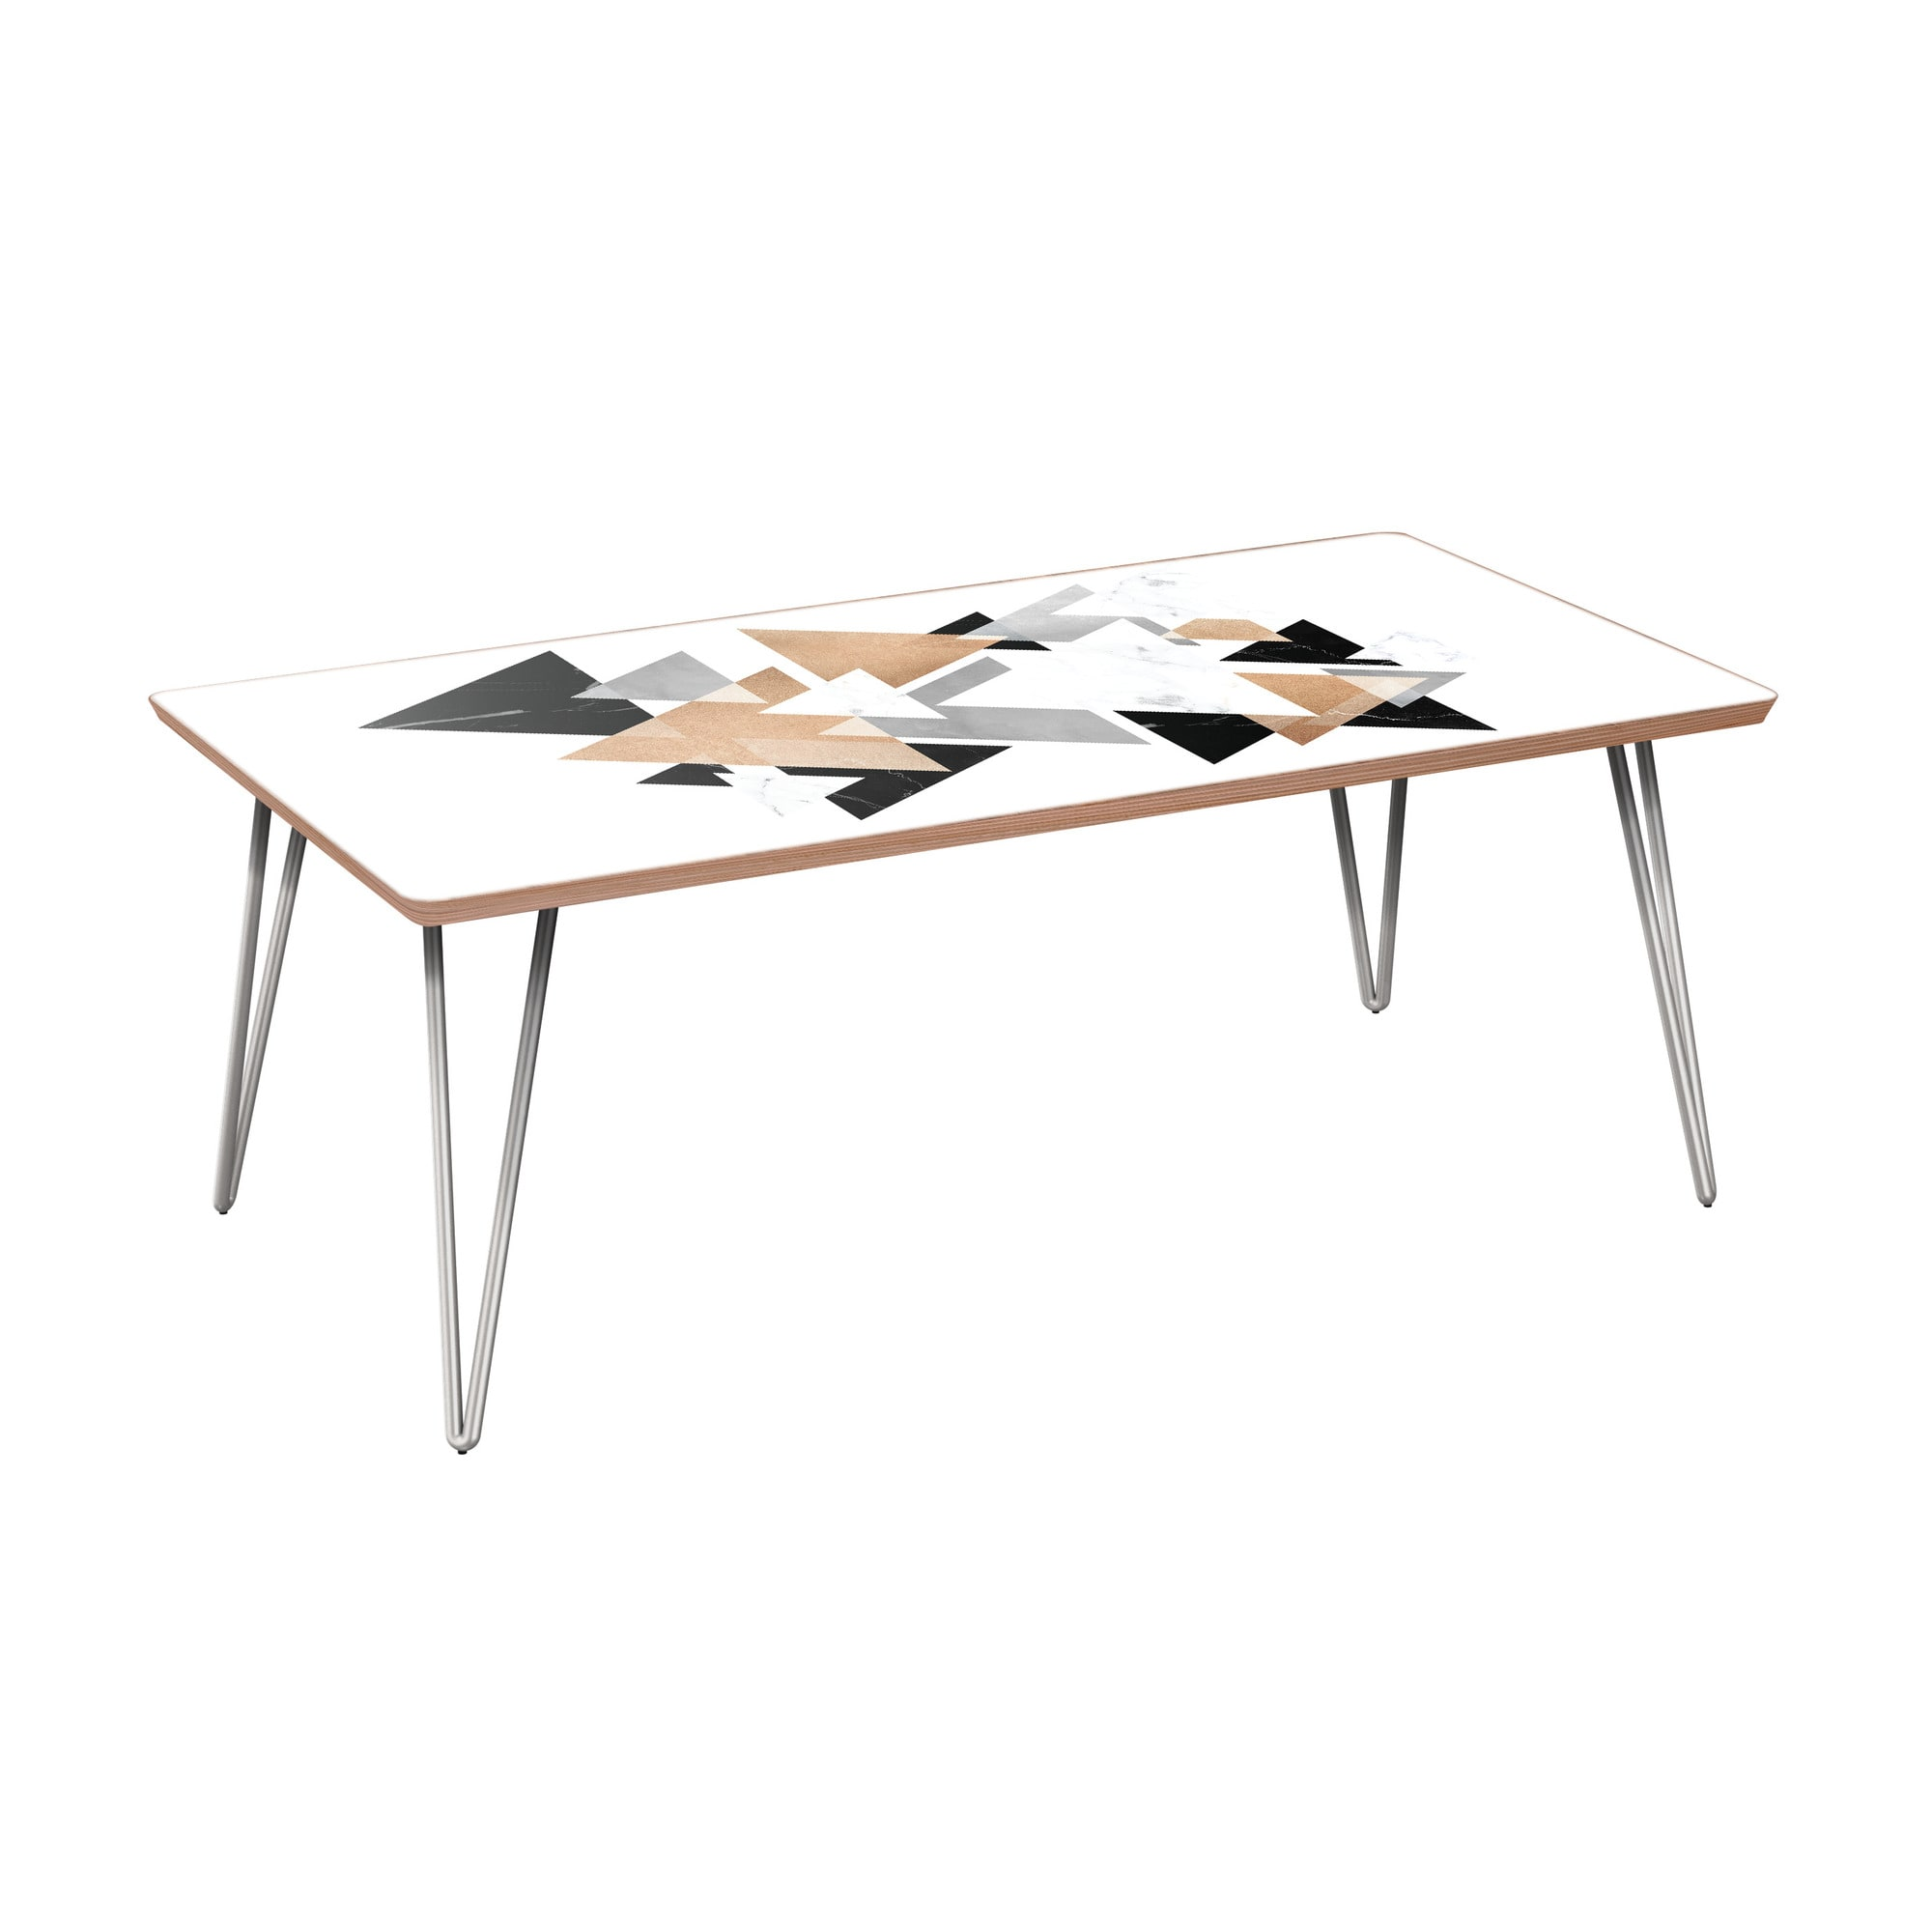 nye koncept brixton marble gold walnut hairpin coffee table with nyk room essentials accent chrome base small counter lamps tablecloth for square house interior ideas porch